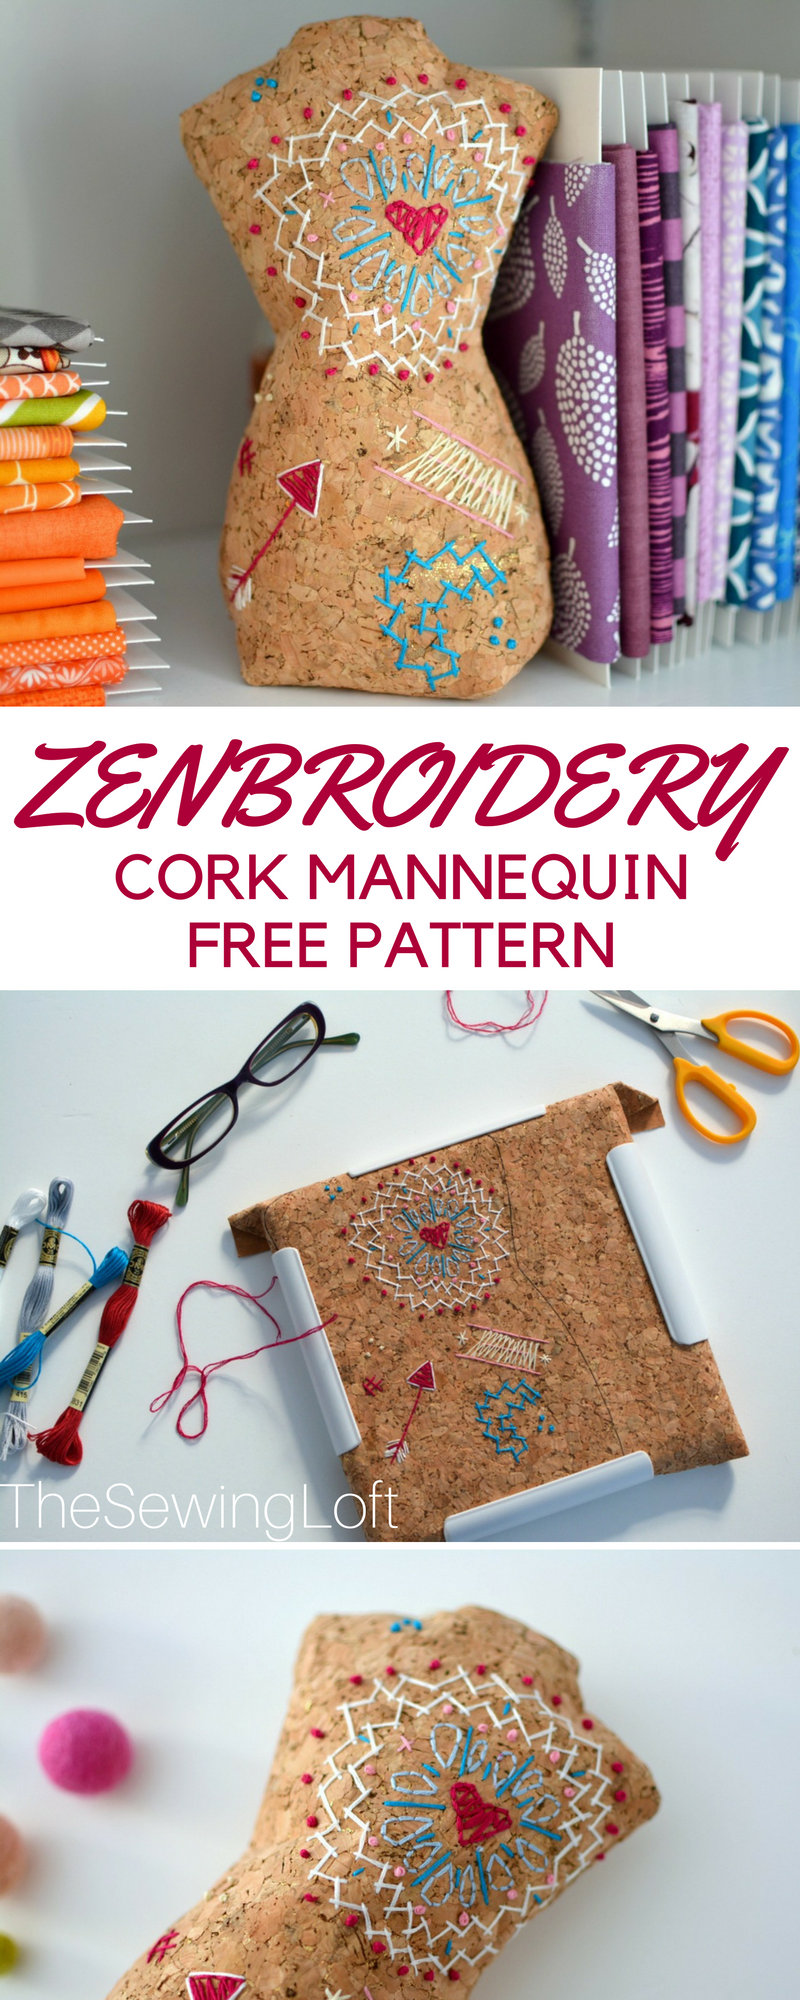 Ever think about using cork fabric to sew on? It's pretty cool especially for zenbroidery. Grab this free DIY mannequin pattern and make one today.